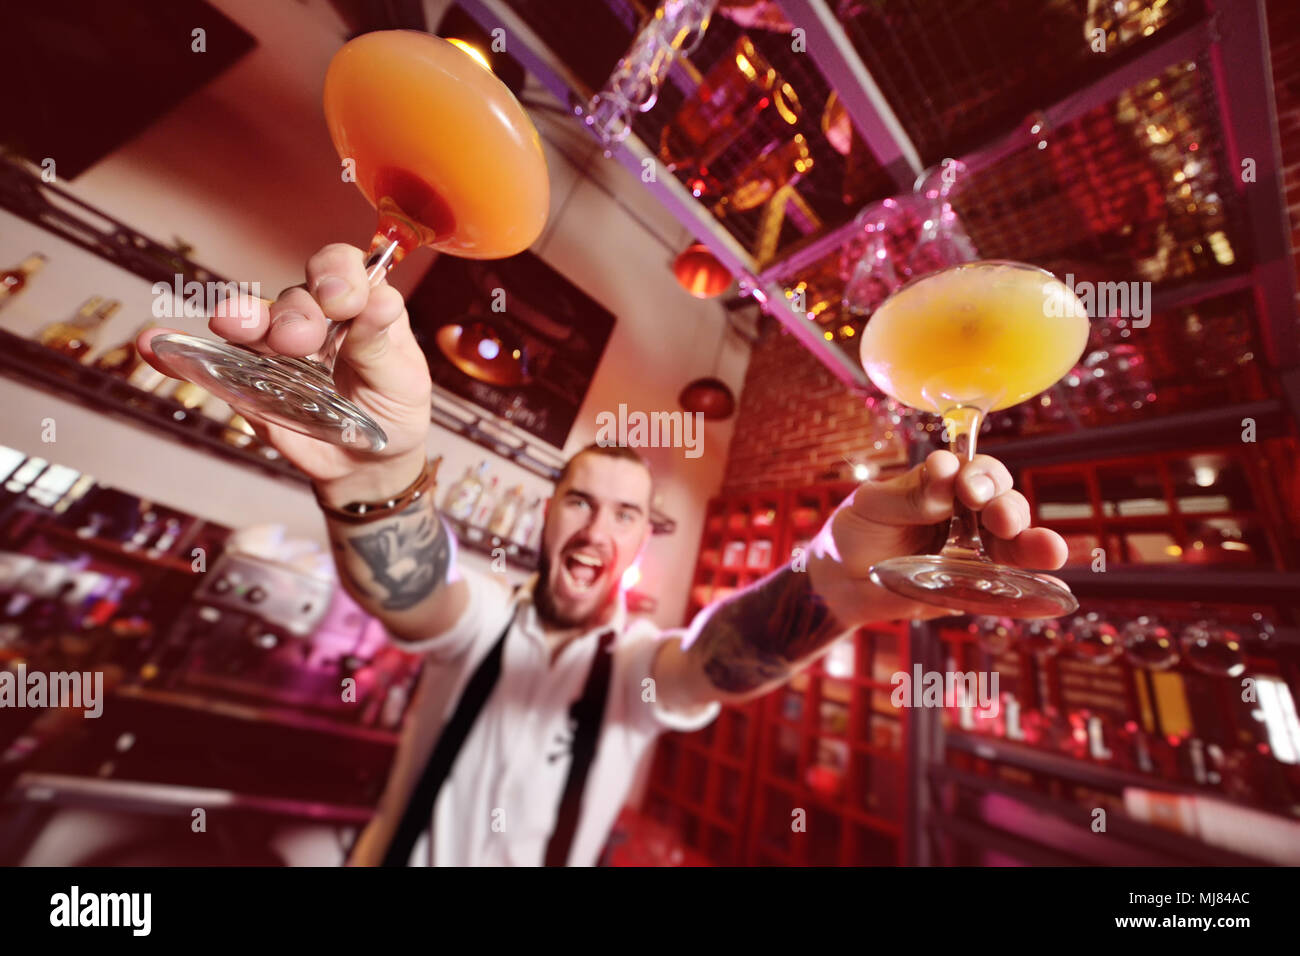 young bartender smiling and giving the client a cocktail of orange color - Stock Image